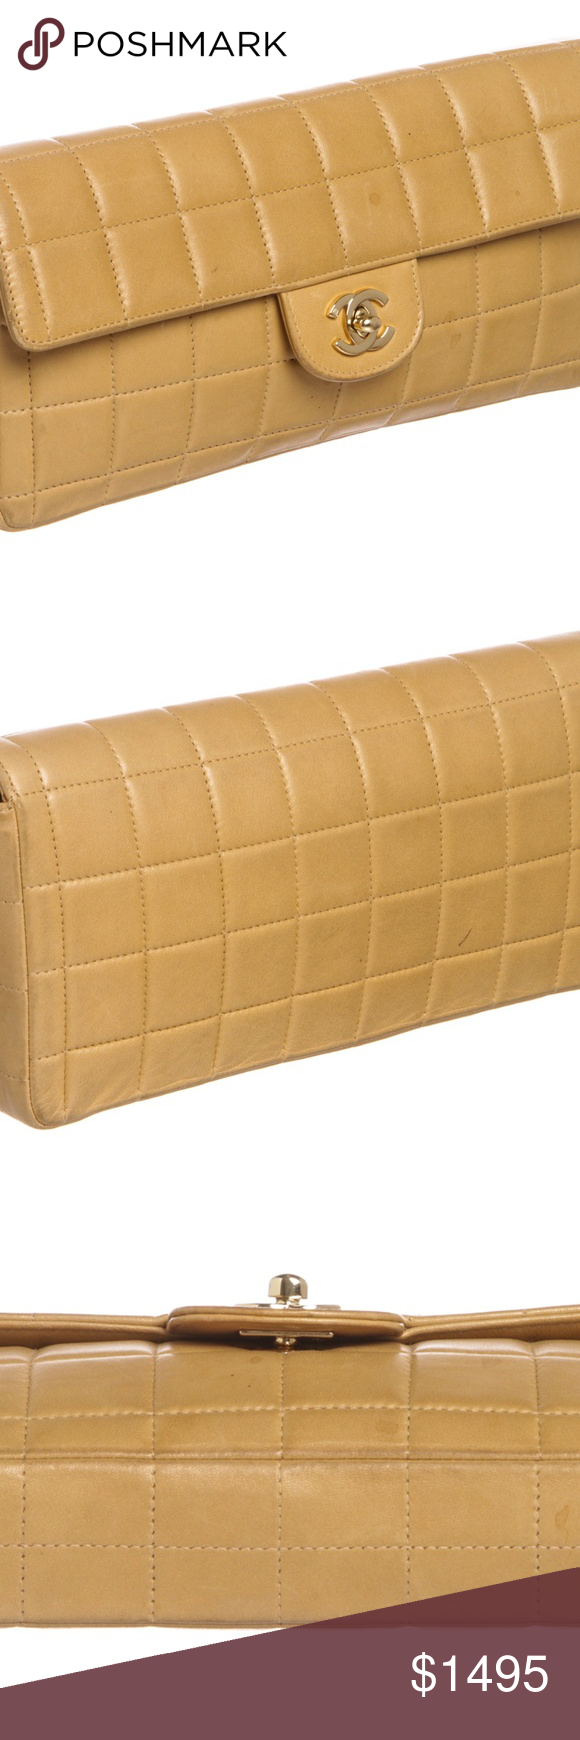 e0b76419f88b Chanel Beige Lambskin Chocolate Bar East West Flap Square quilted leather  Chanel Chocolate Bar East West